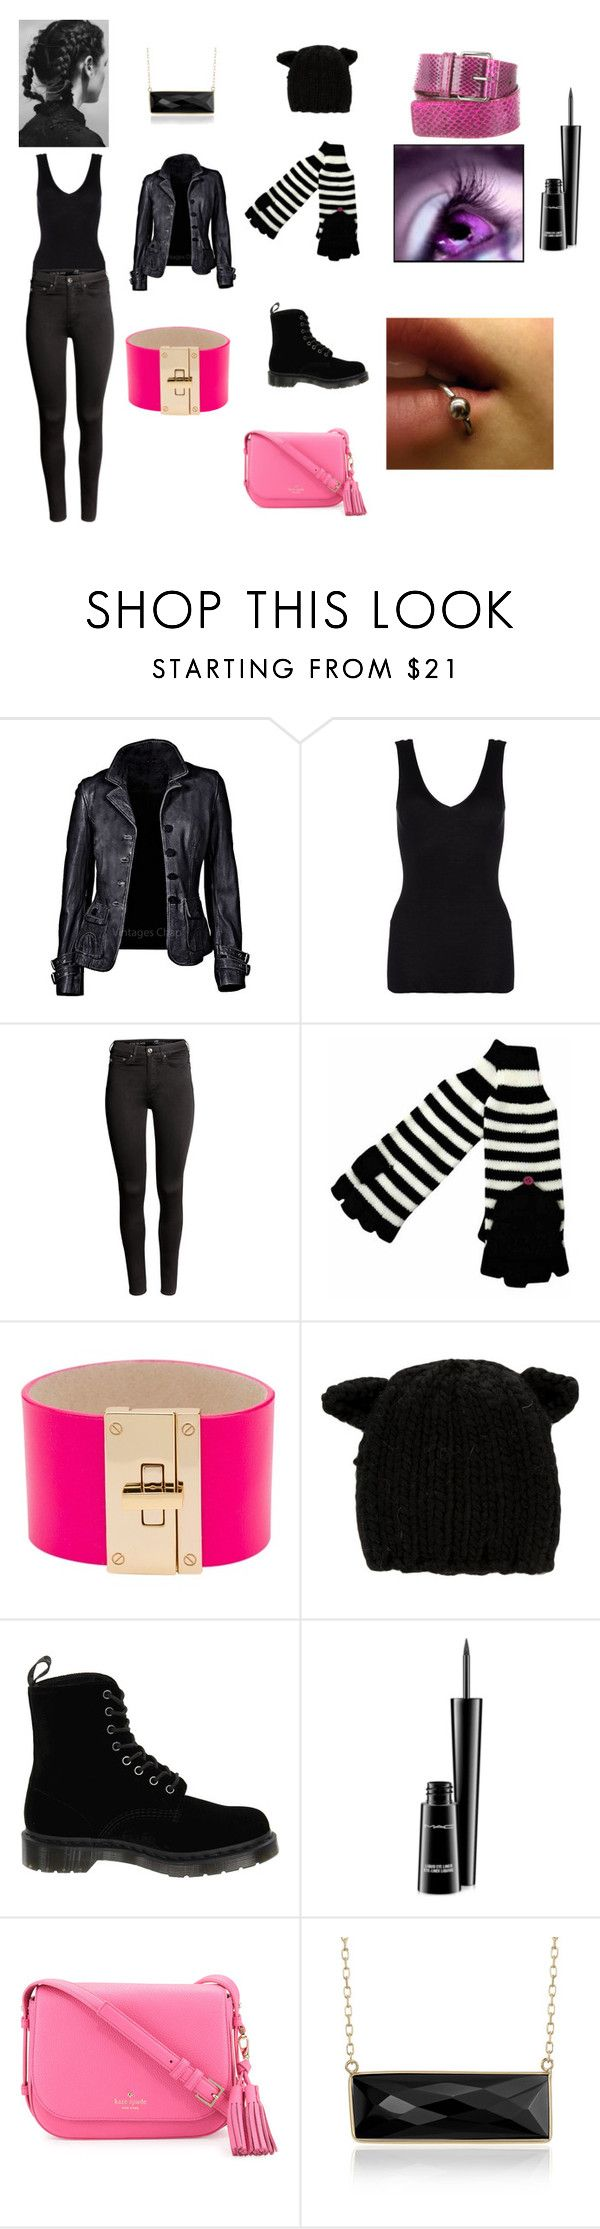 """Zoe Anna Blue Silent Scream"" by plaspenny ❤ liked on Polyvore featuring Hanro…"